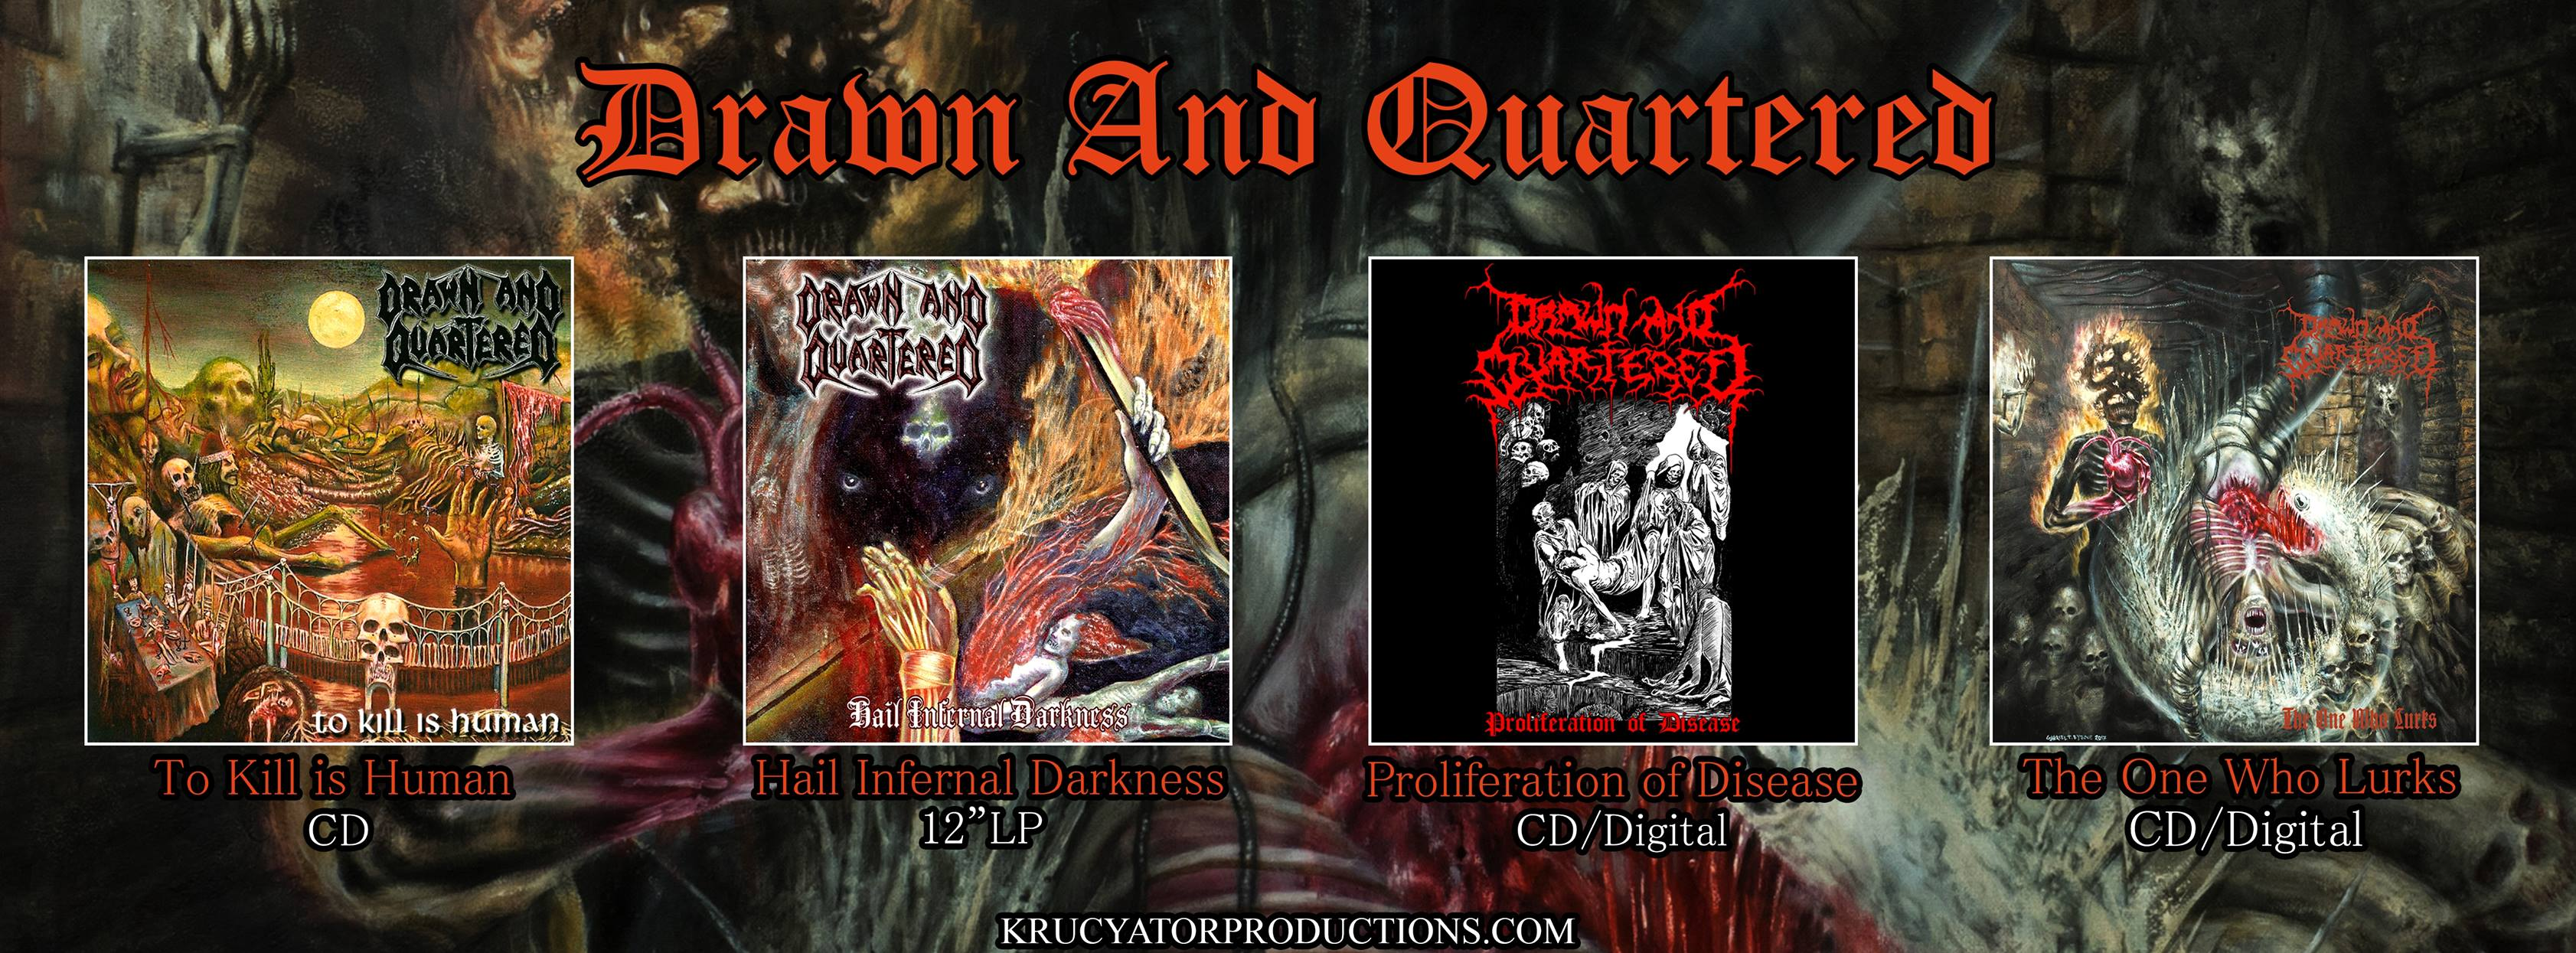 drawn and quartered biography discography and more distrolution